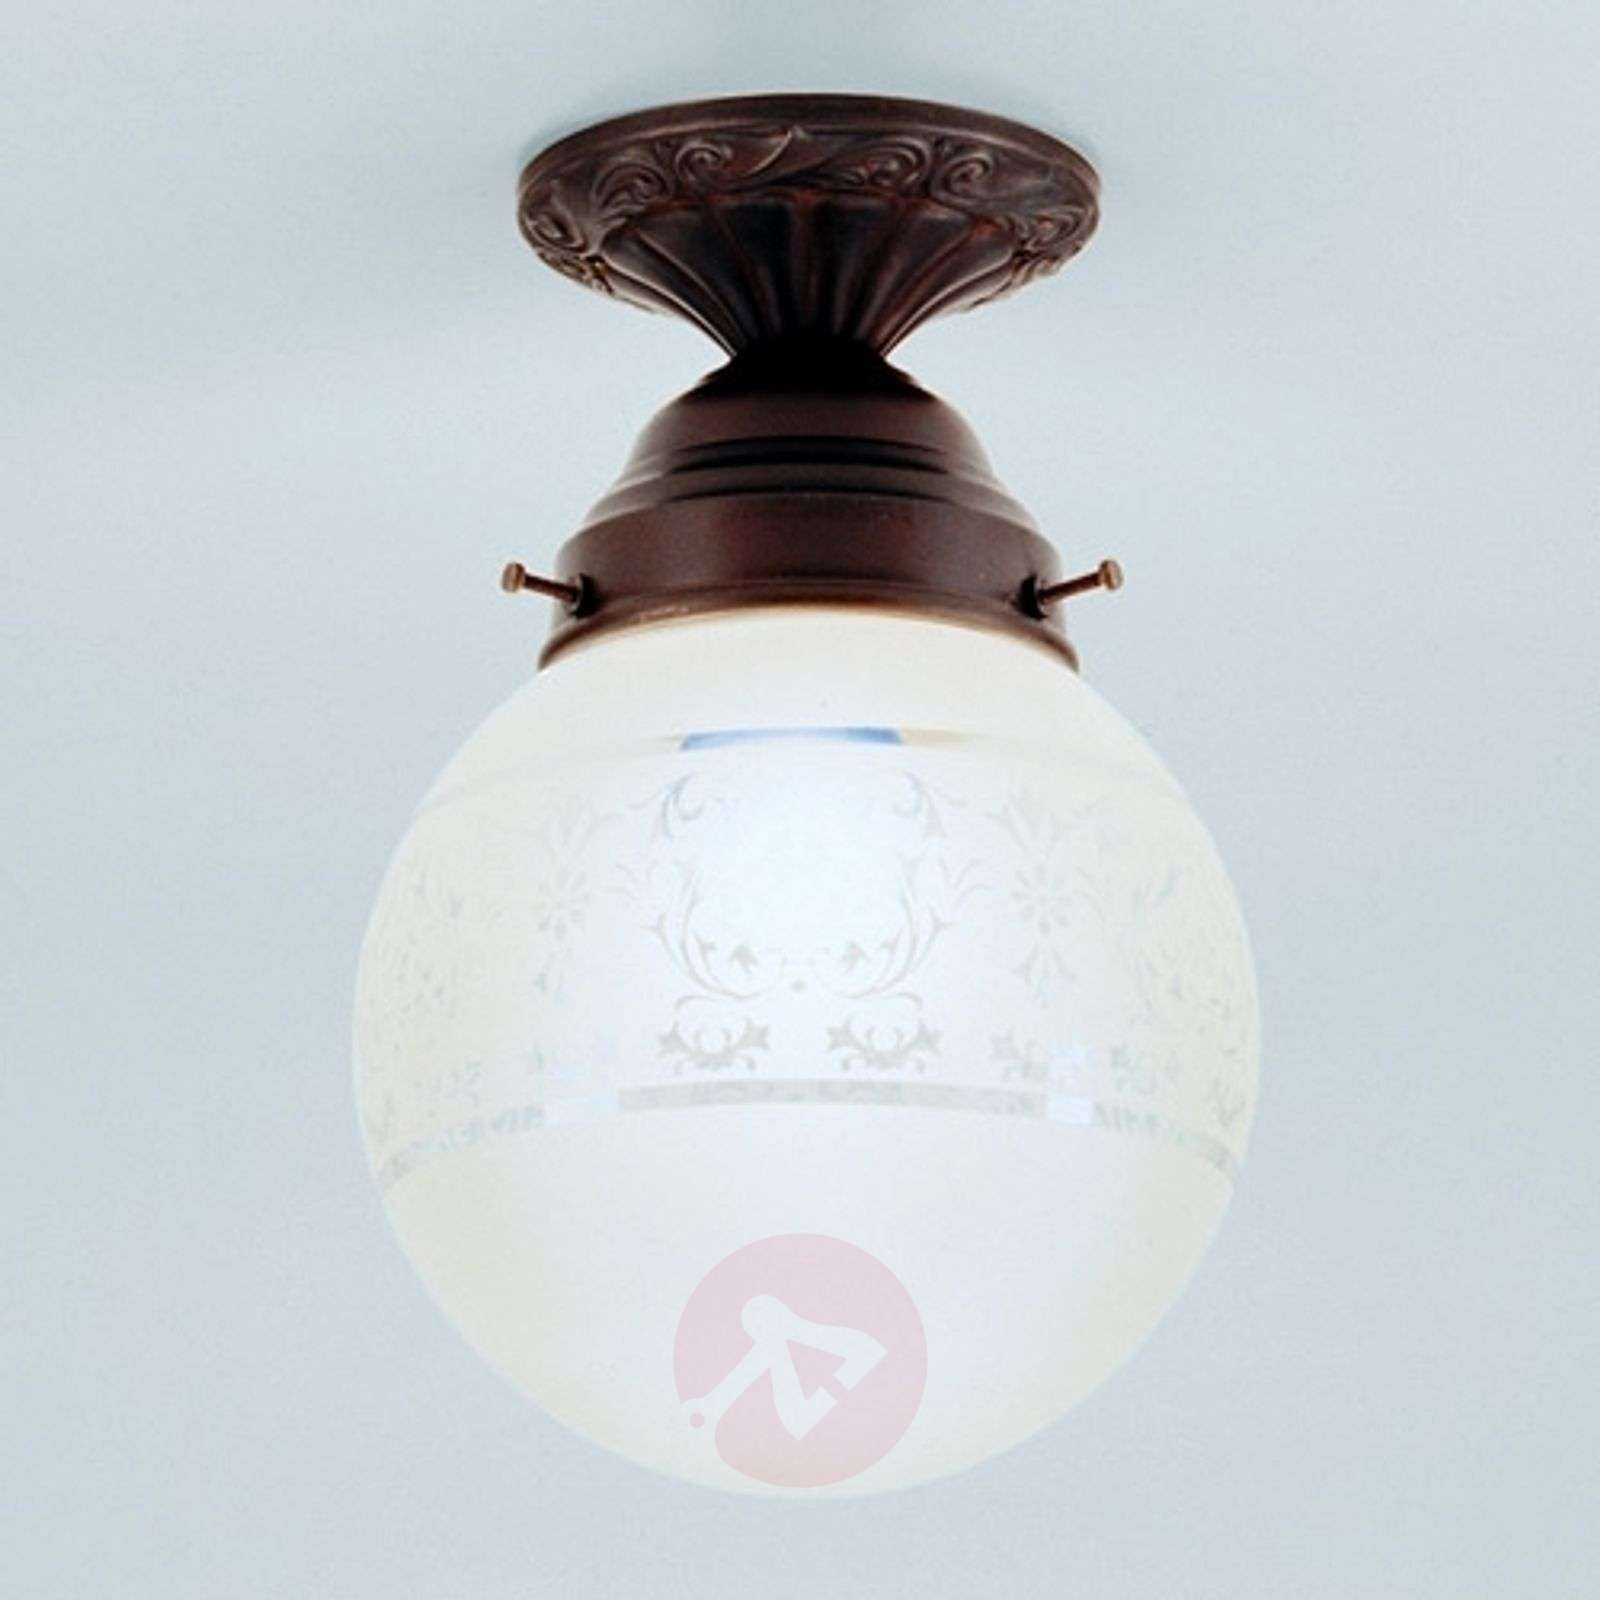 Lampa sufitowa Jack - made in Germany